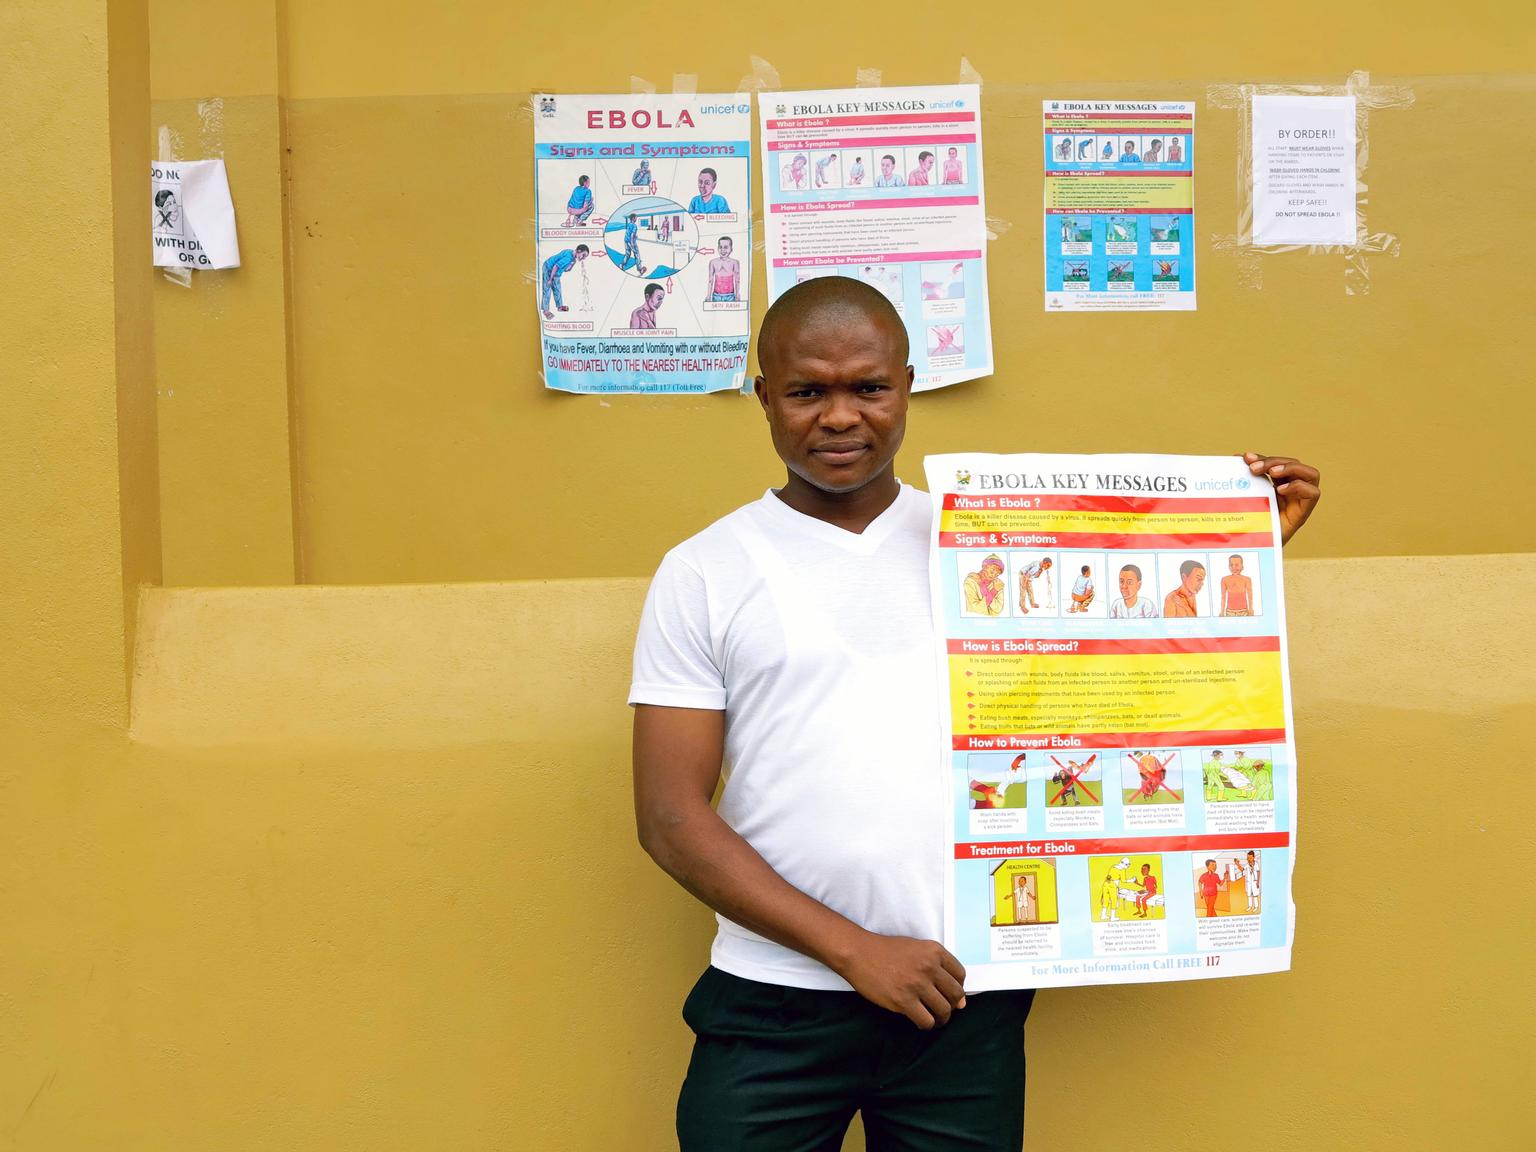 Joseph Kamara, a pharmacist at Kenema Government Hospital, holds a poster about the symptoms of Ebola in Kenema, Sierra Leone. © UNICEF/NYHQ2014-1058/Dunlop